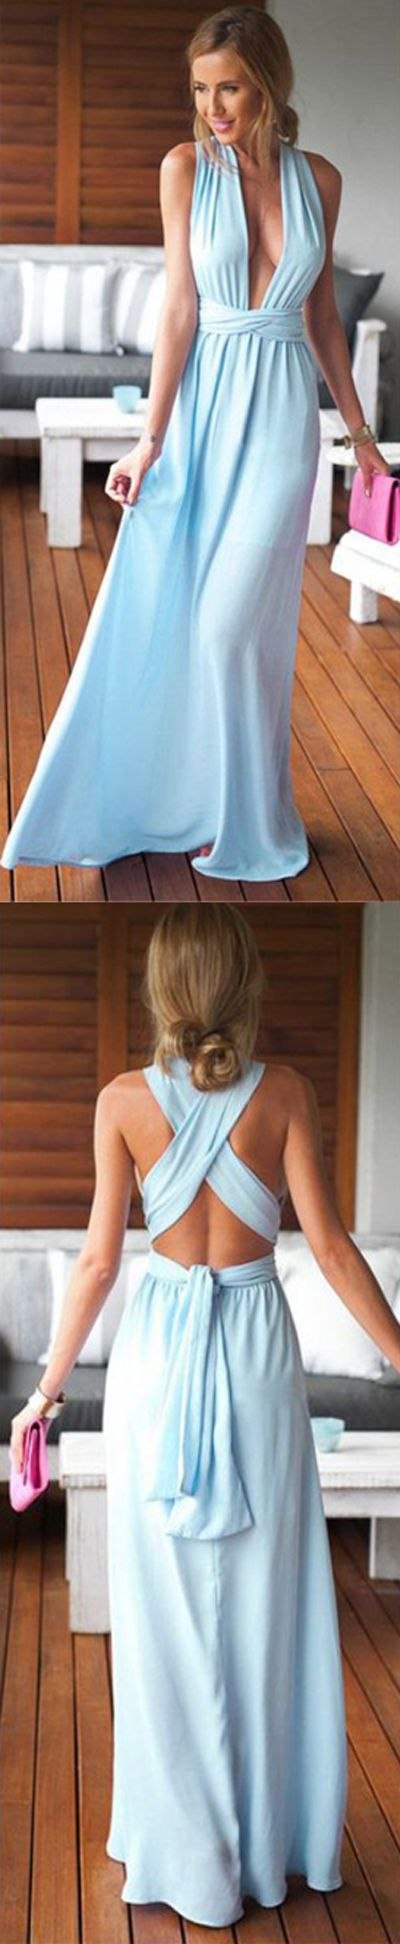 Blue A Line Floor Length Deep V Neck Sleeveless X Back Evening/Prom Dress P71   Long Prom Dresses,Cheap Prom Dress,Party Dresses,Prom Gowns,Gowns Prom,Evening Dresses,Cheap Prom Dresses,Dresses for Girls,Prom Dress UK,Prom Suit,Prom Dress Brand,Prom Dress Store, Party Dress